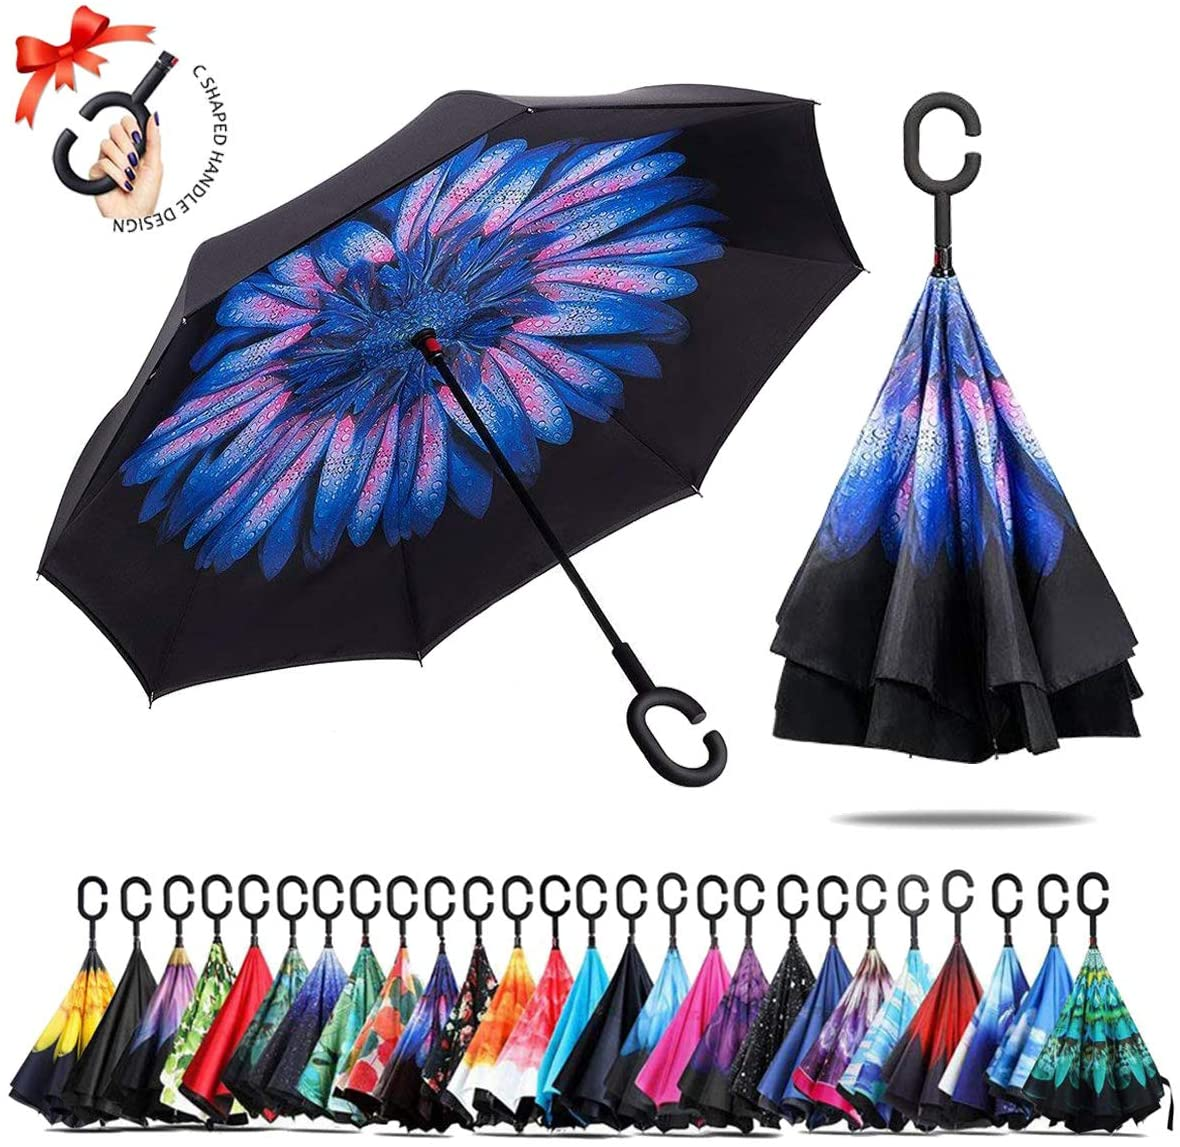 umbresen Double Layer Inverted Umbrella Cars Reverse Open Folding Umbrellas, Windproof UV Protection Large Self Stand Upside Down Straight Umbrella for Golf Women and Men with C-Shaped